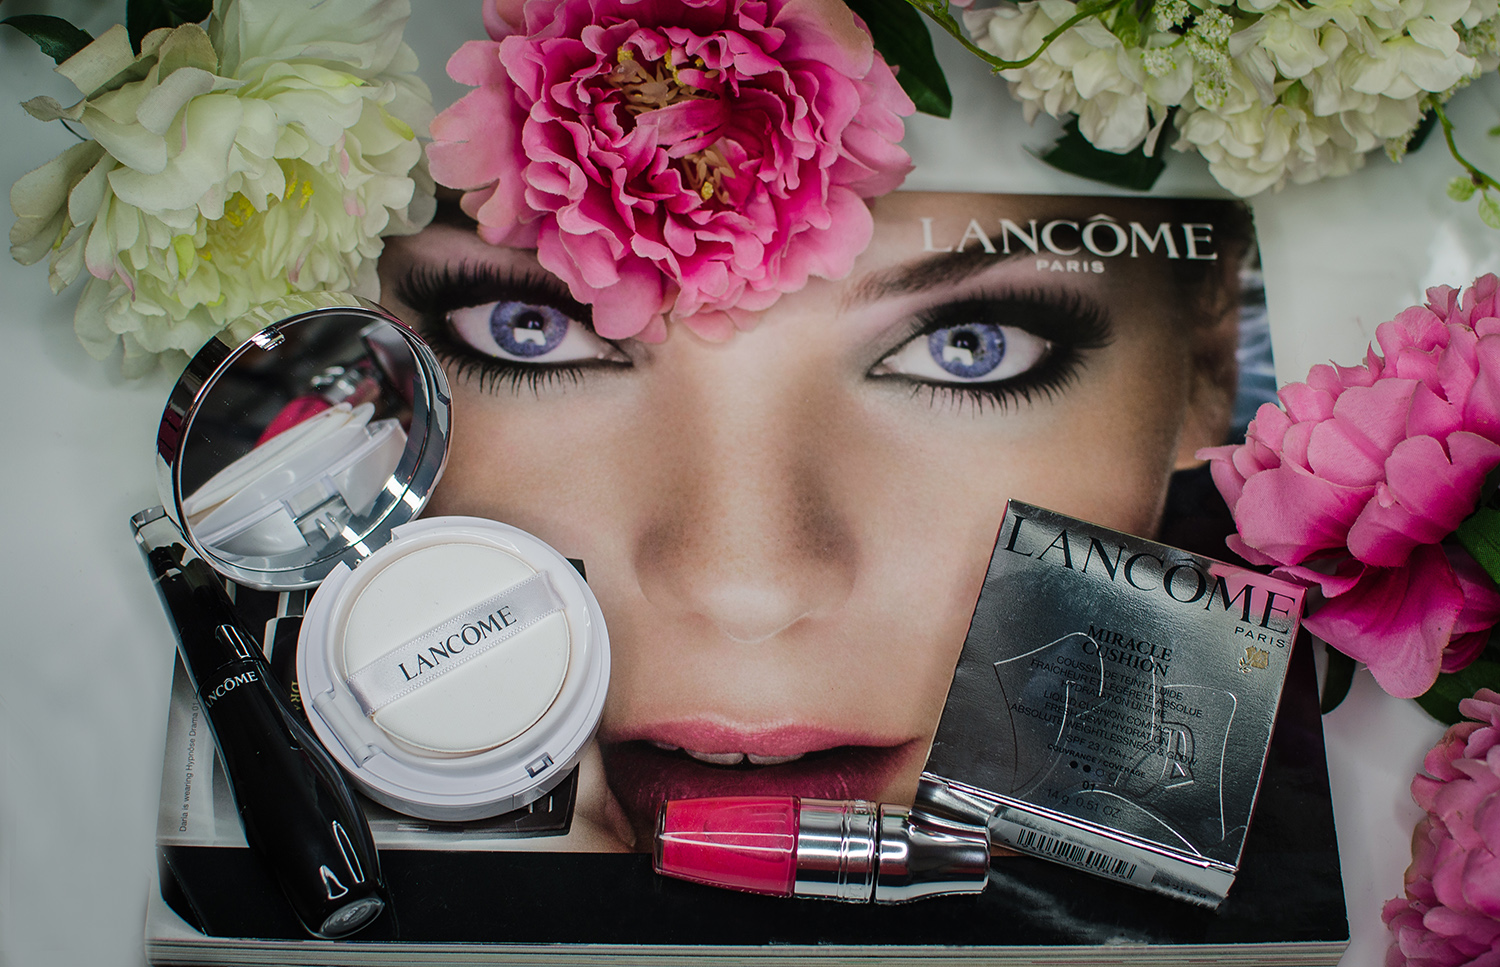 lancome products anotherside of me blog